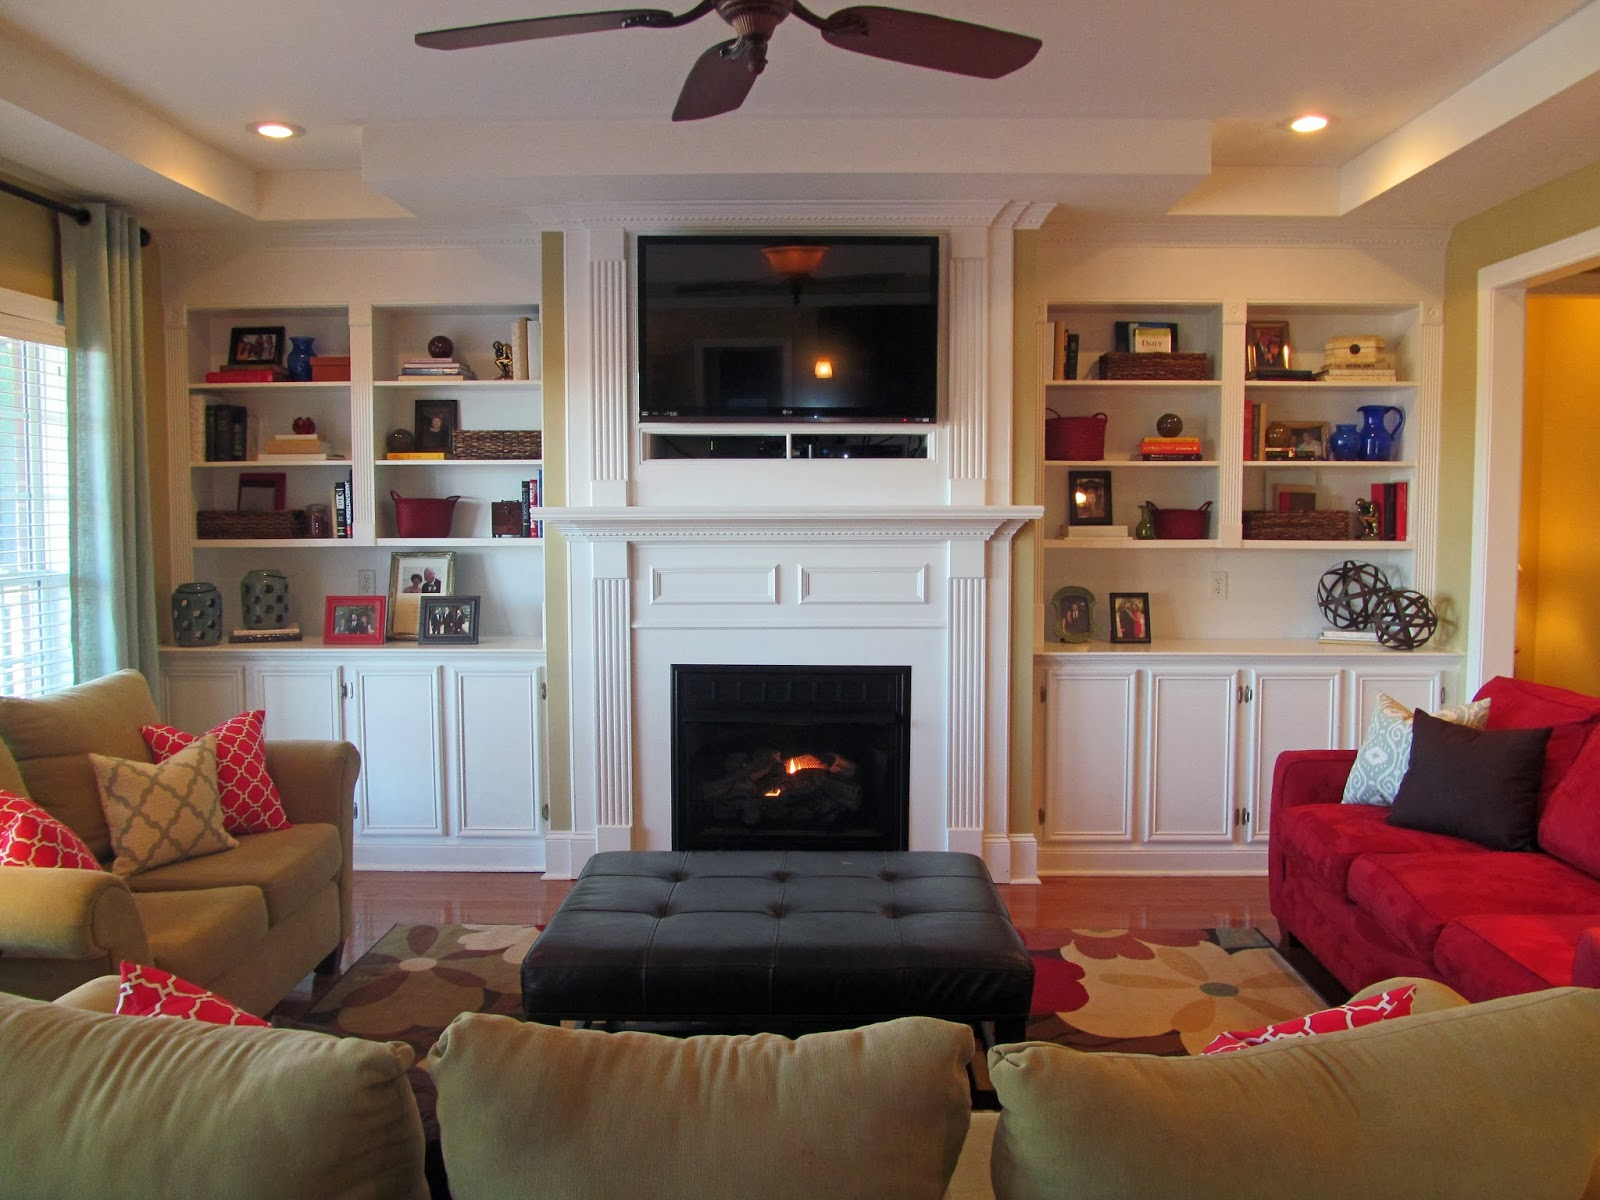 Family Room Makeover: Before and After Photos